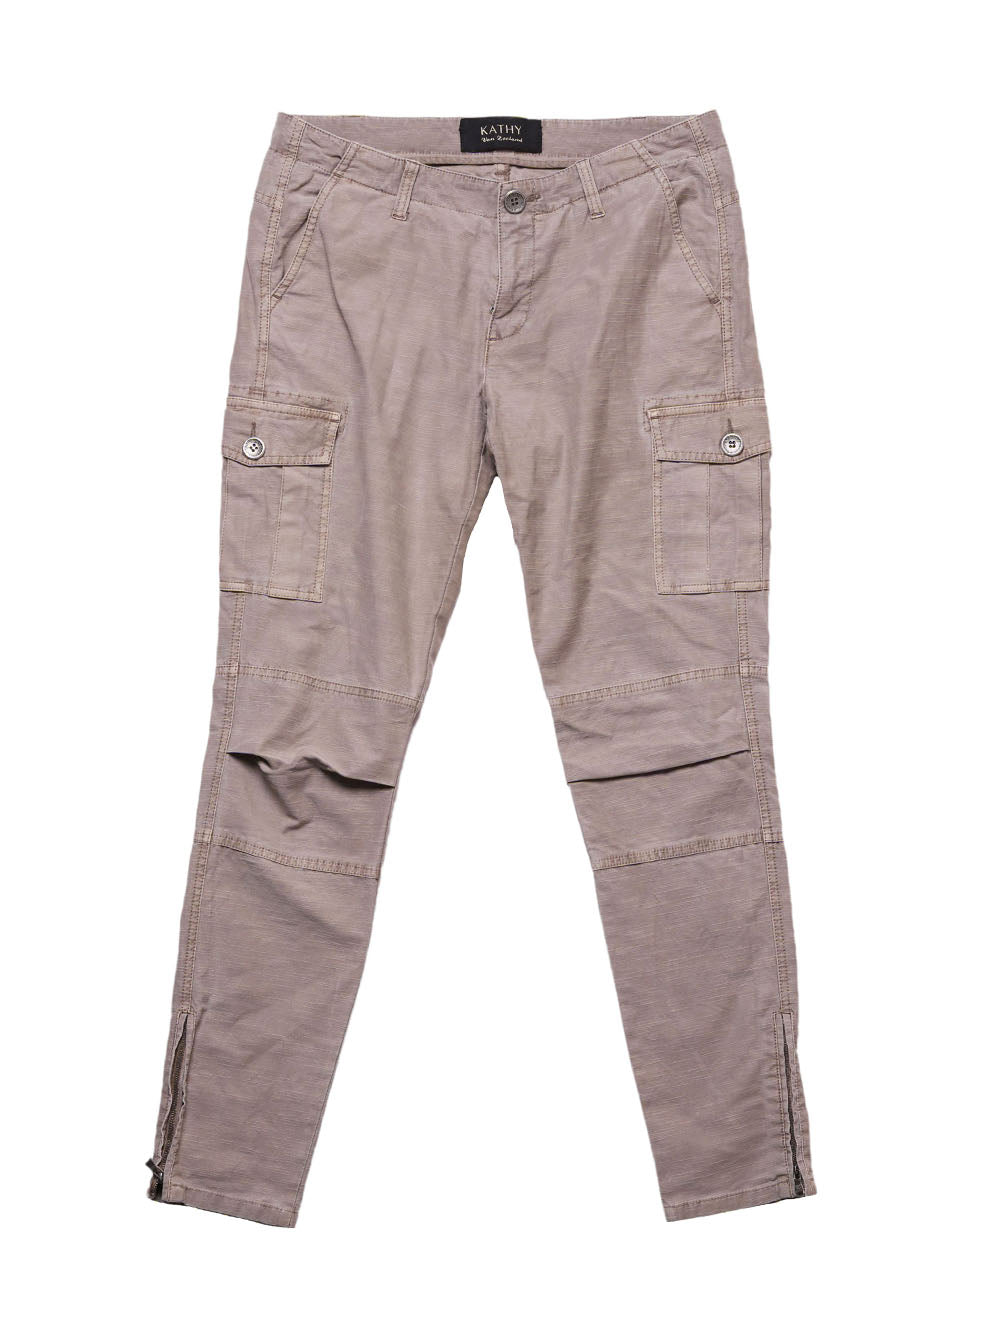 Front photo of Preloved kathy Grey Woman's trousers - size 10/M